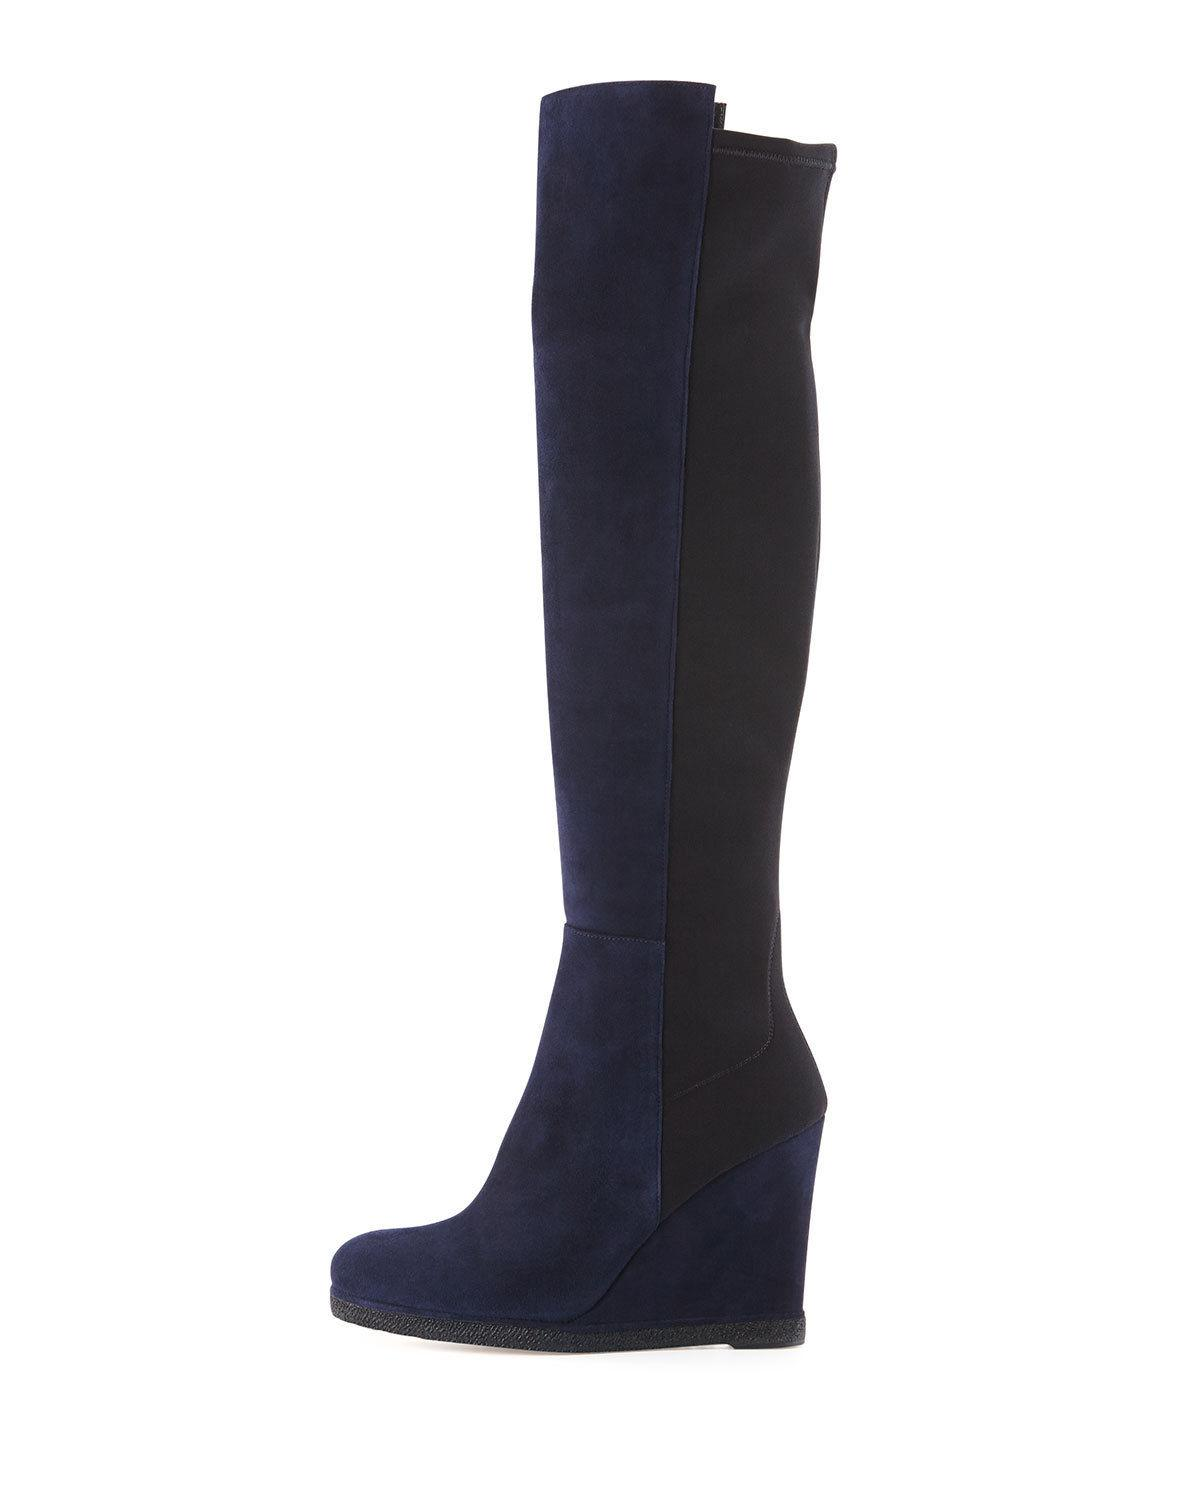 $695 Stuart Weitzman DEMISWOON Black Suede Wedge Stretch Boots OTK Over Knee 9